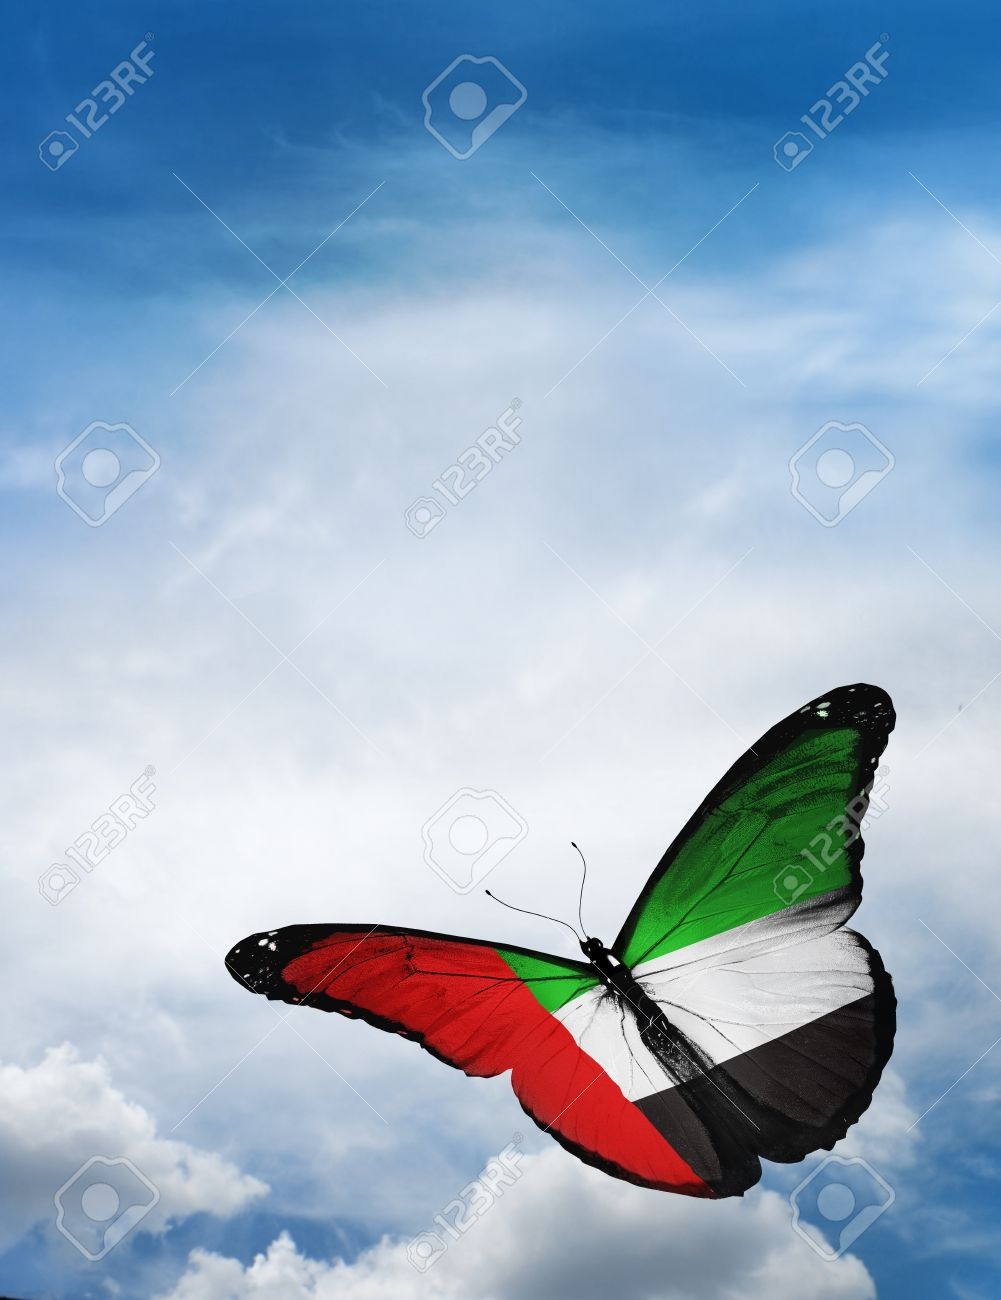 UAE flag butterfly flying on sky background - 33614644